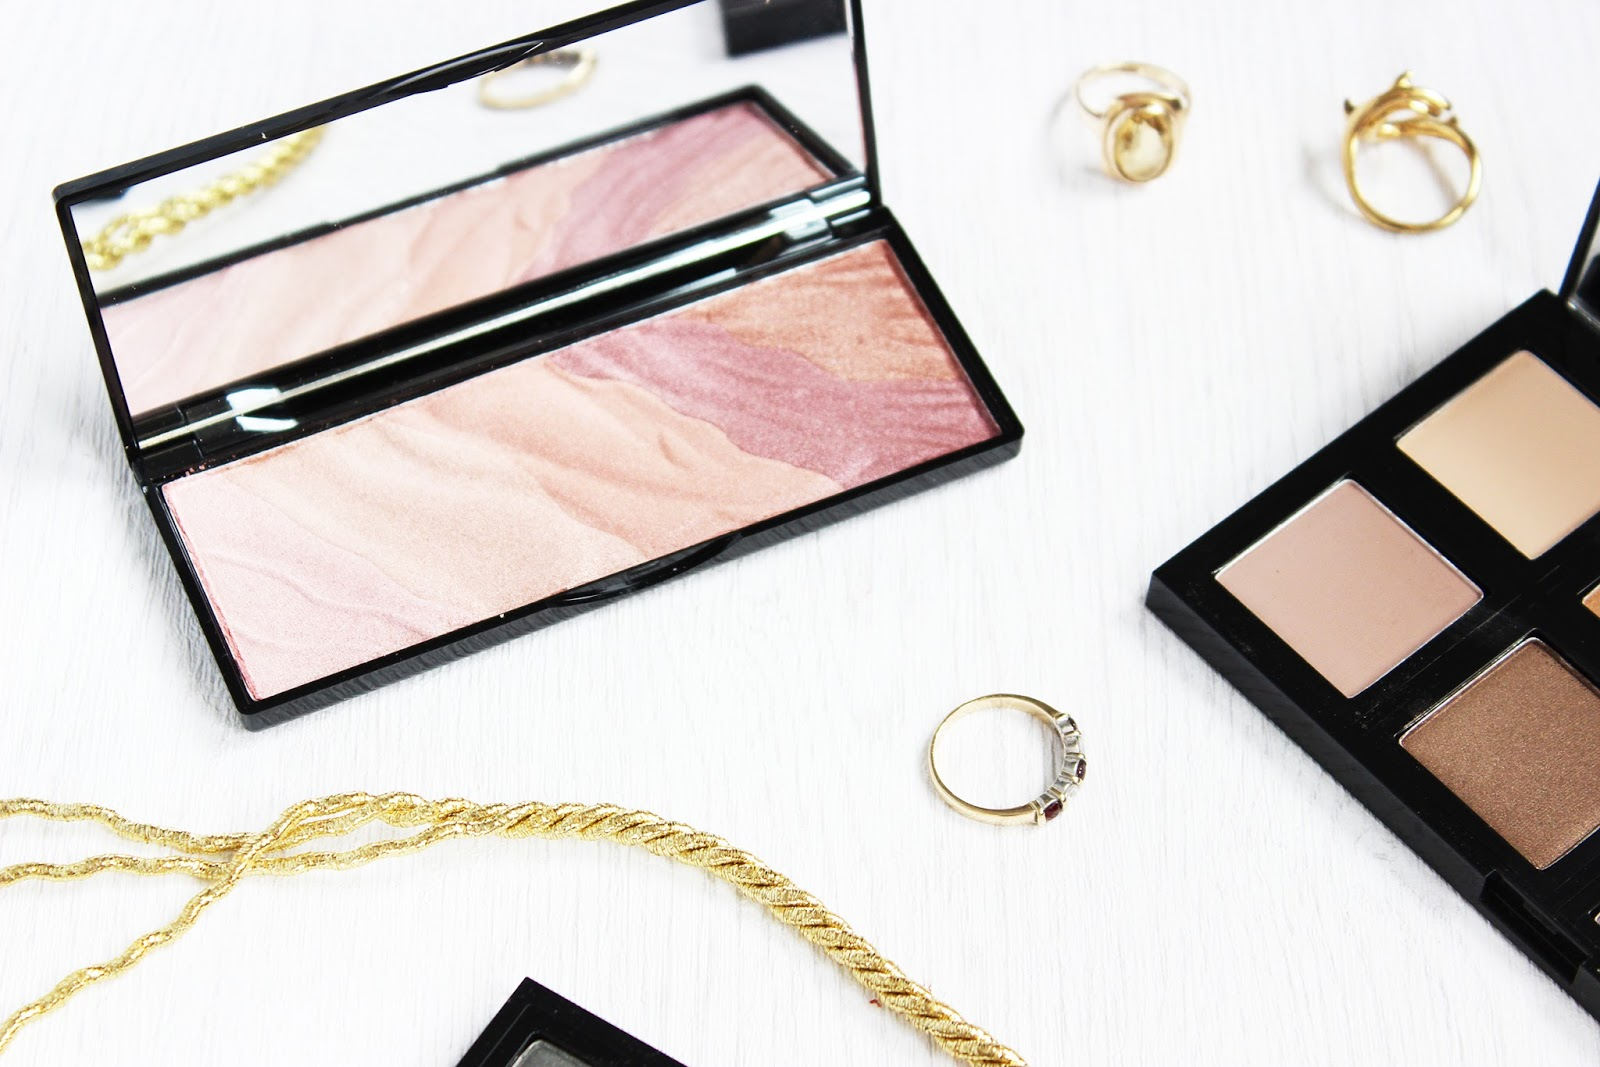 Must-have high street palettes from GOSH, The Body Shop and MUA - MUA LUXE close up